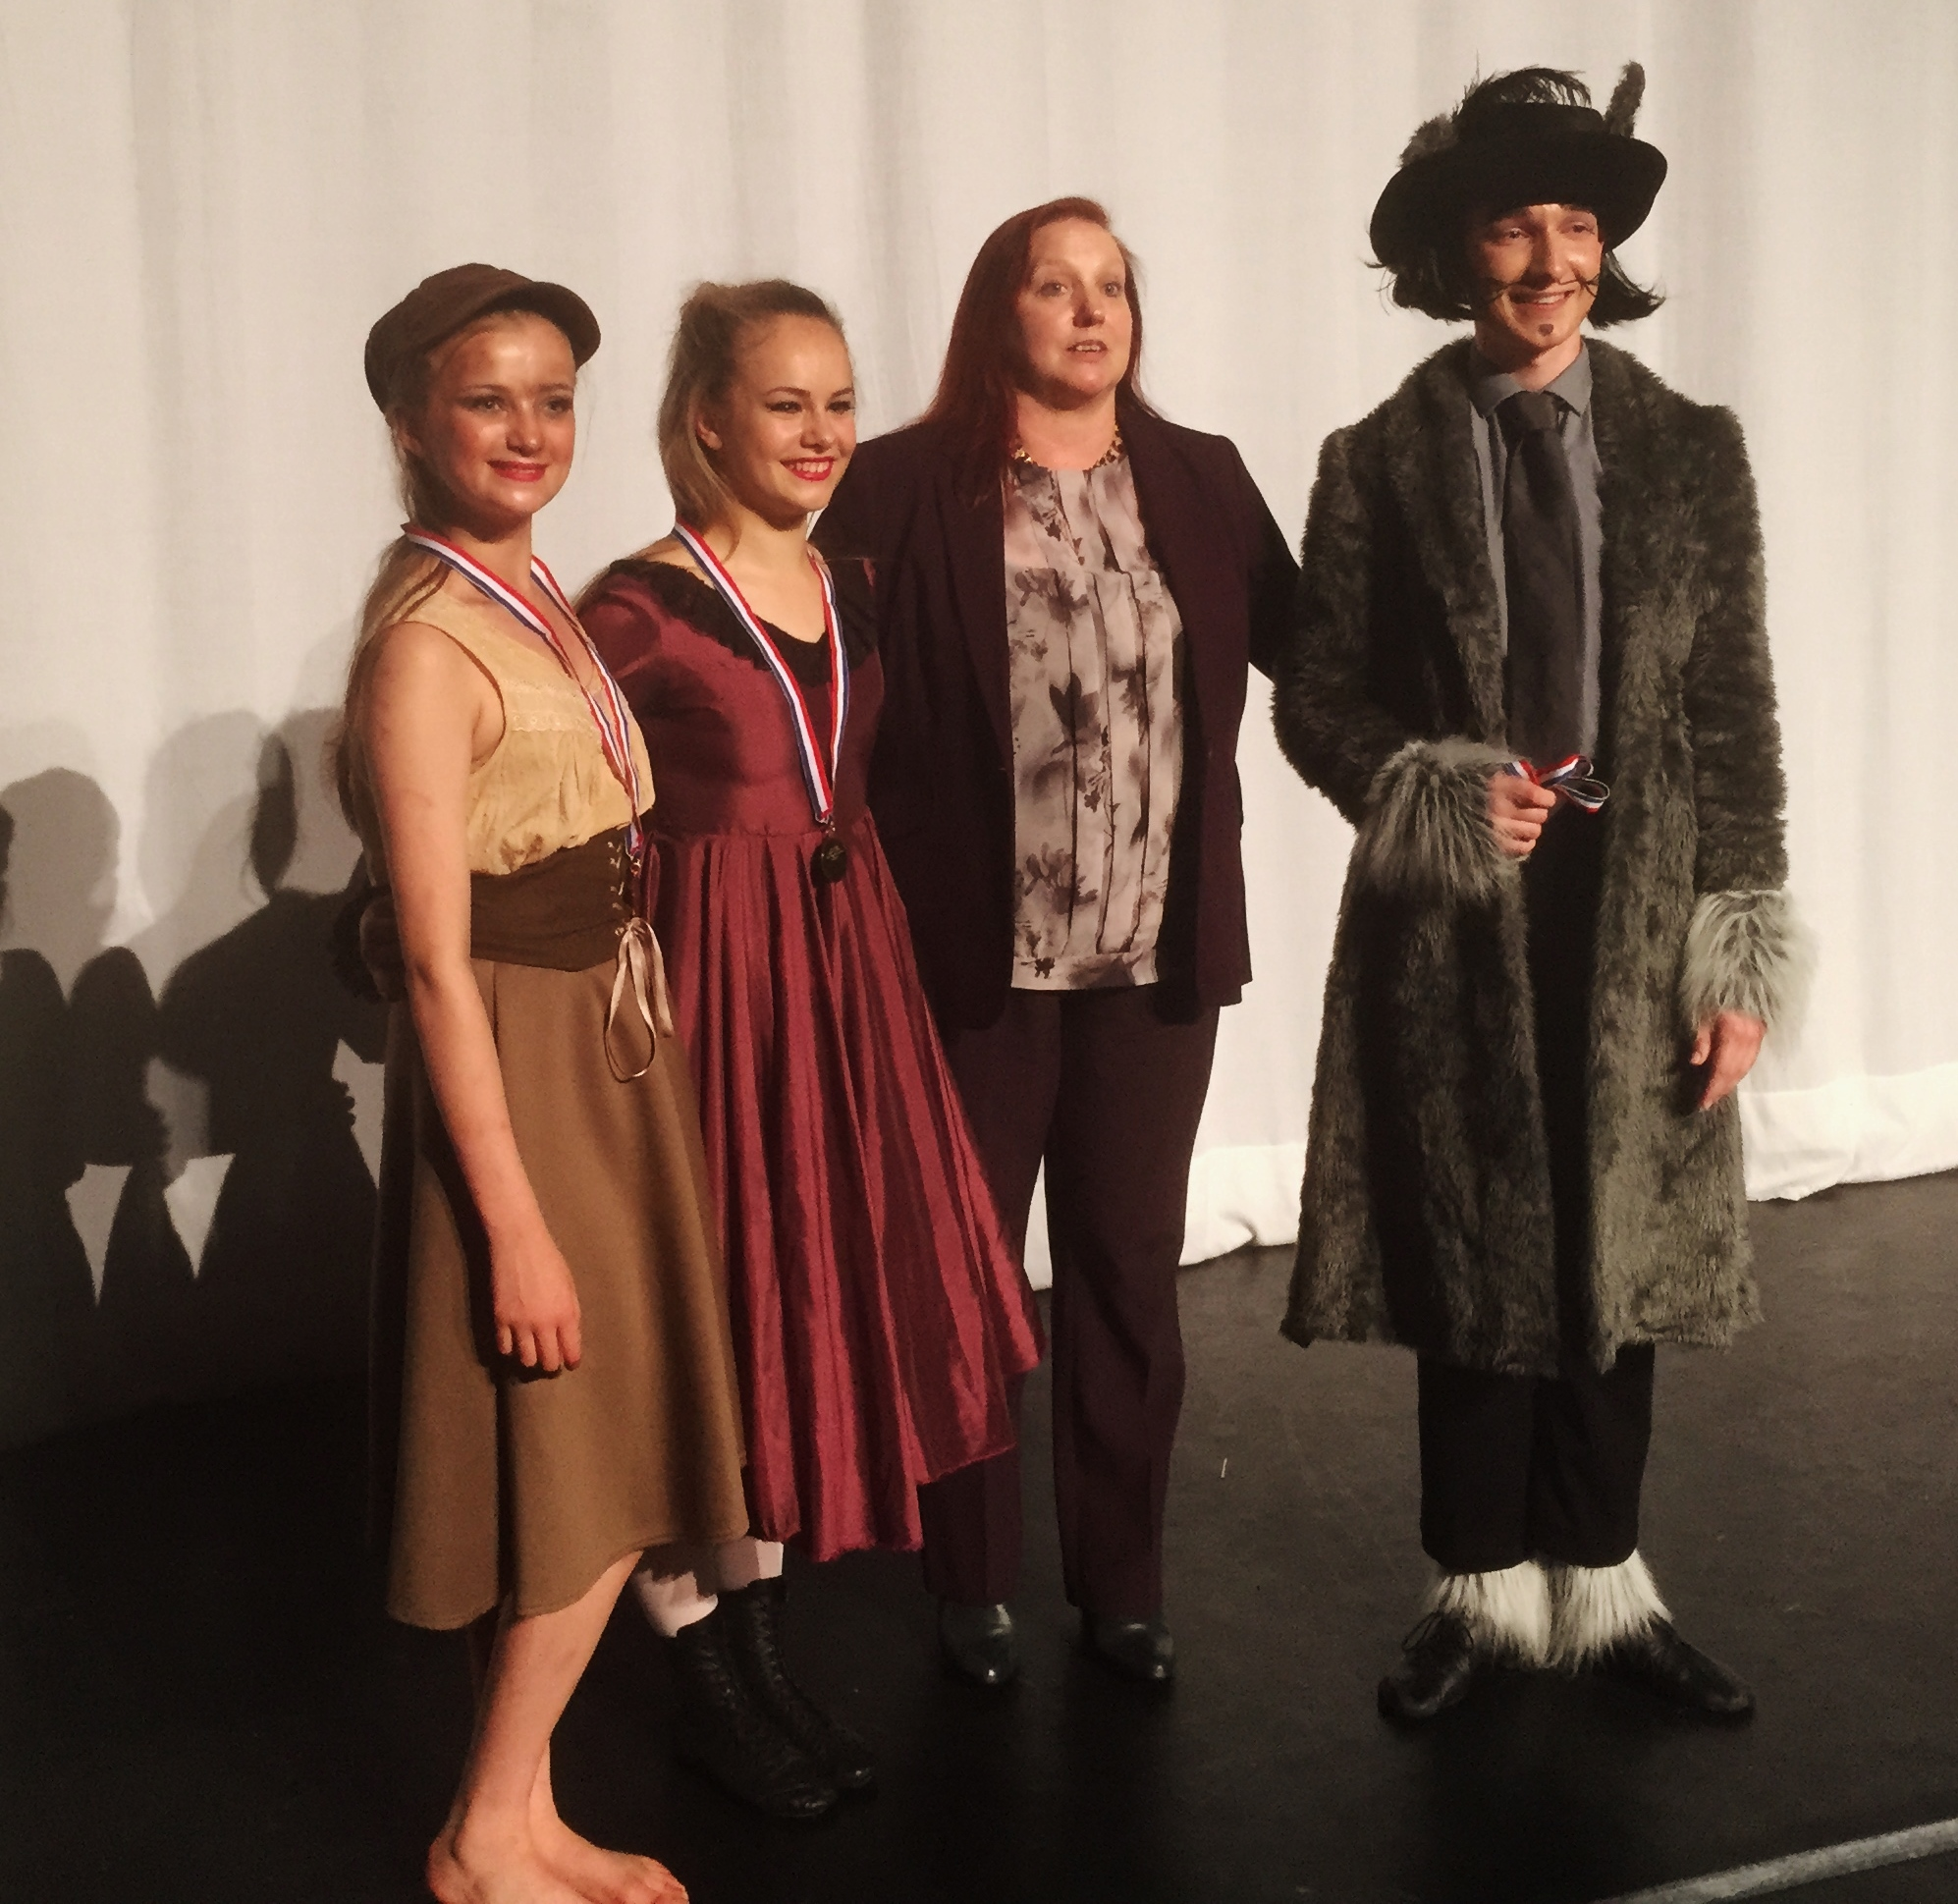 Senior Song and Dance Champions Emily Gardiner (centre) Winner, Thomas Matthews (right) Runner Up